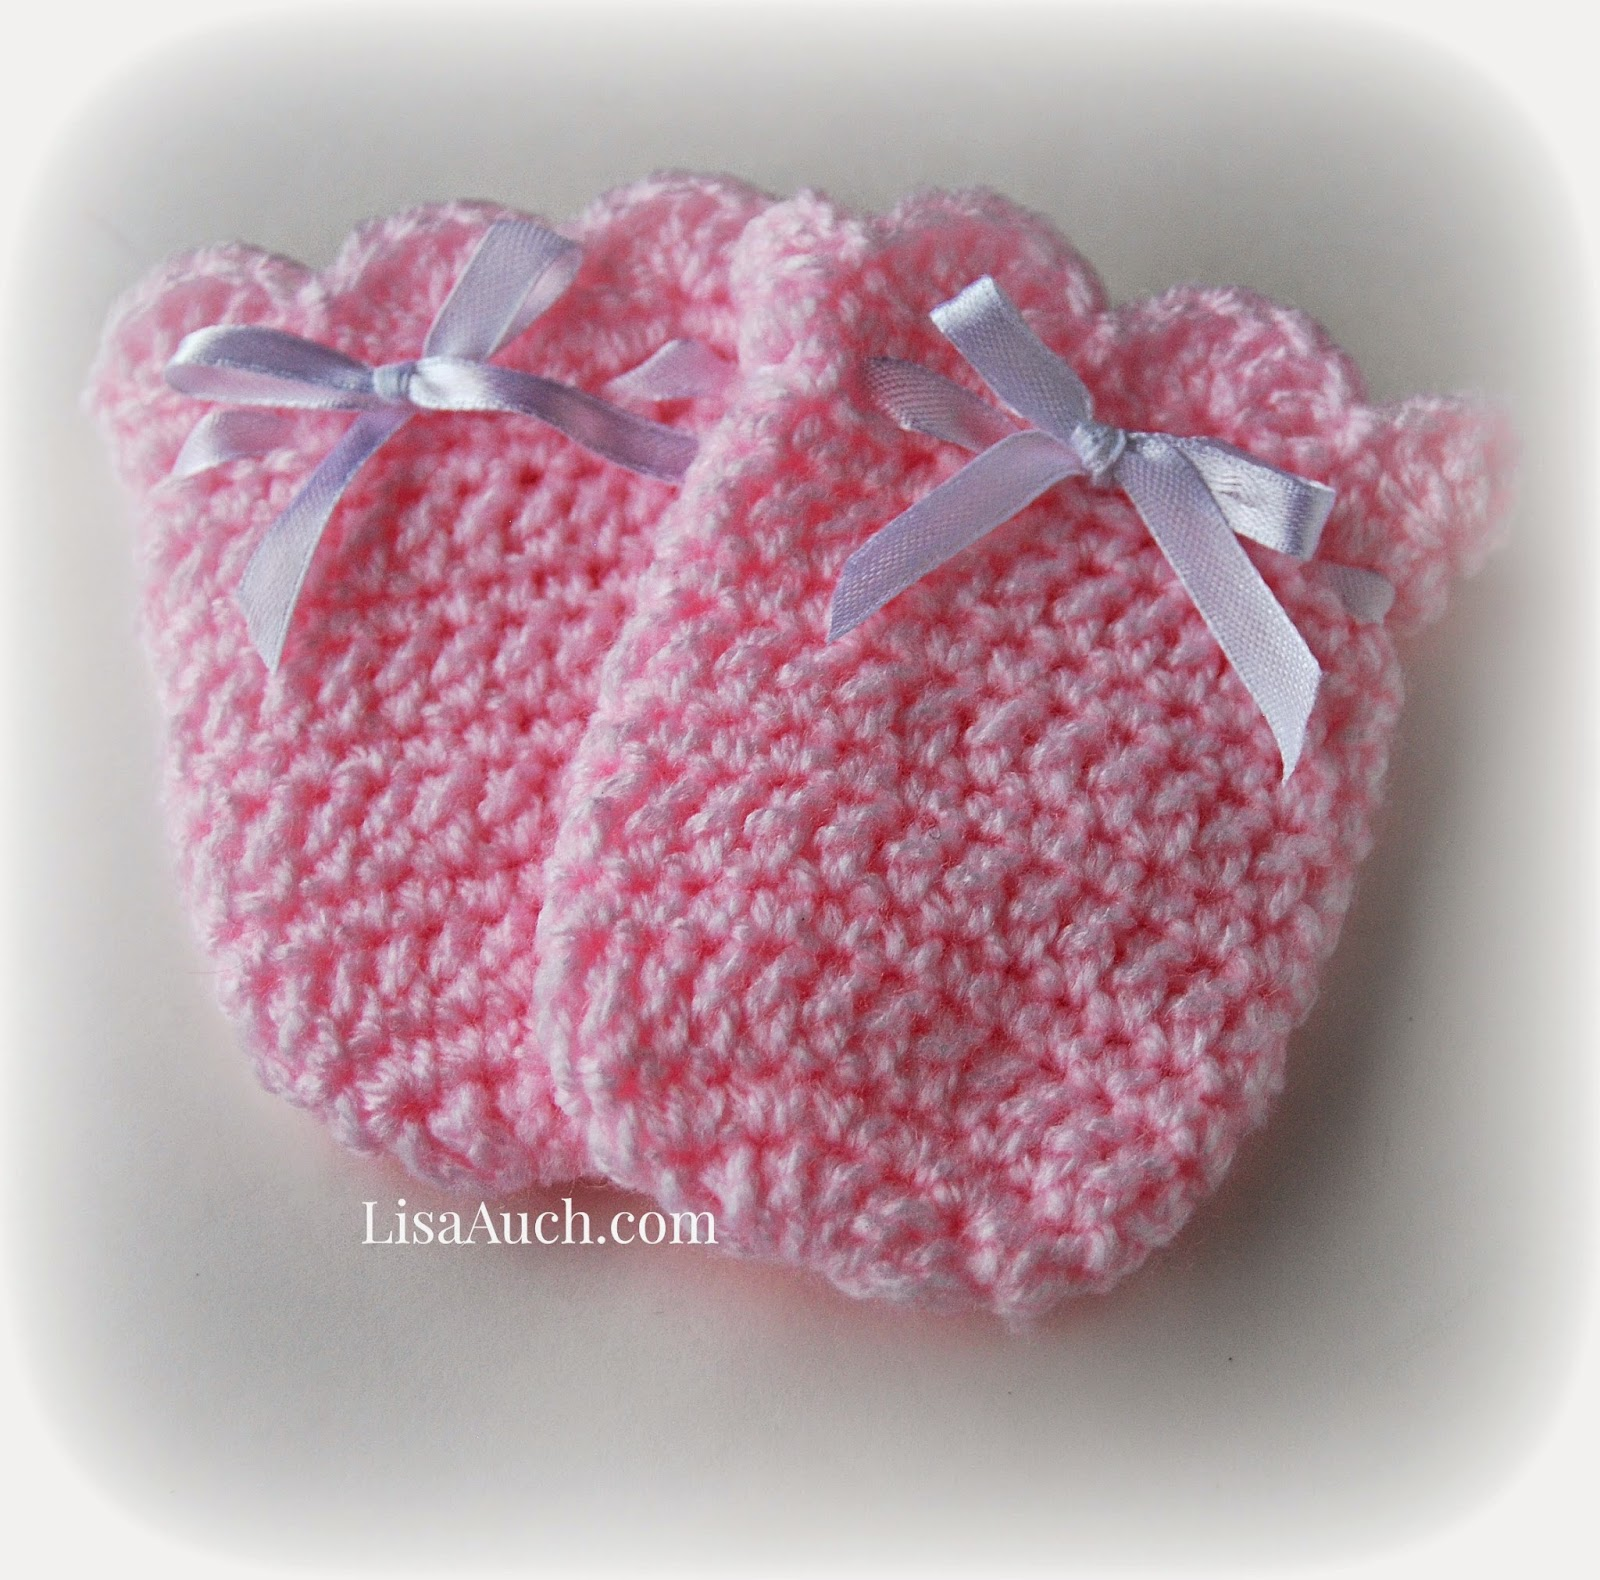 Gloves Cotton Baby Newborn, Made of percent cotton for softness, Scratch mittens are the perfect way to keep your baby's little hands covered and avoid scratching, Mittens have gentle elastic to help stay put, prevent babies from scratching themselves on their face with fingernails, .